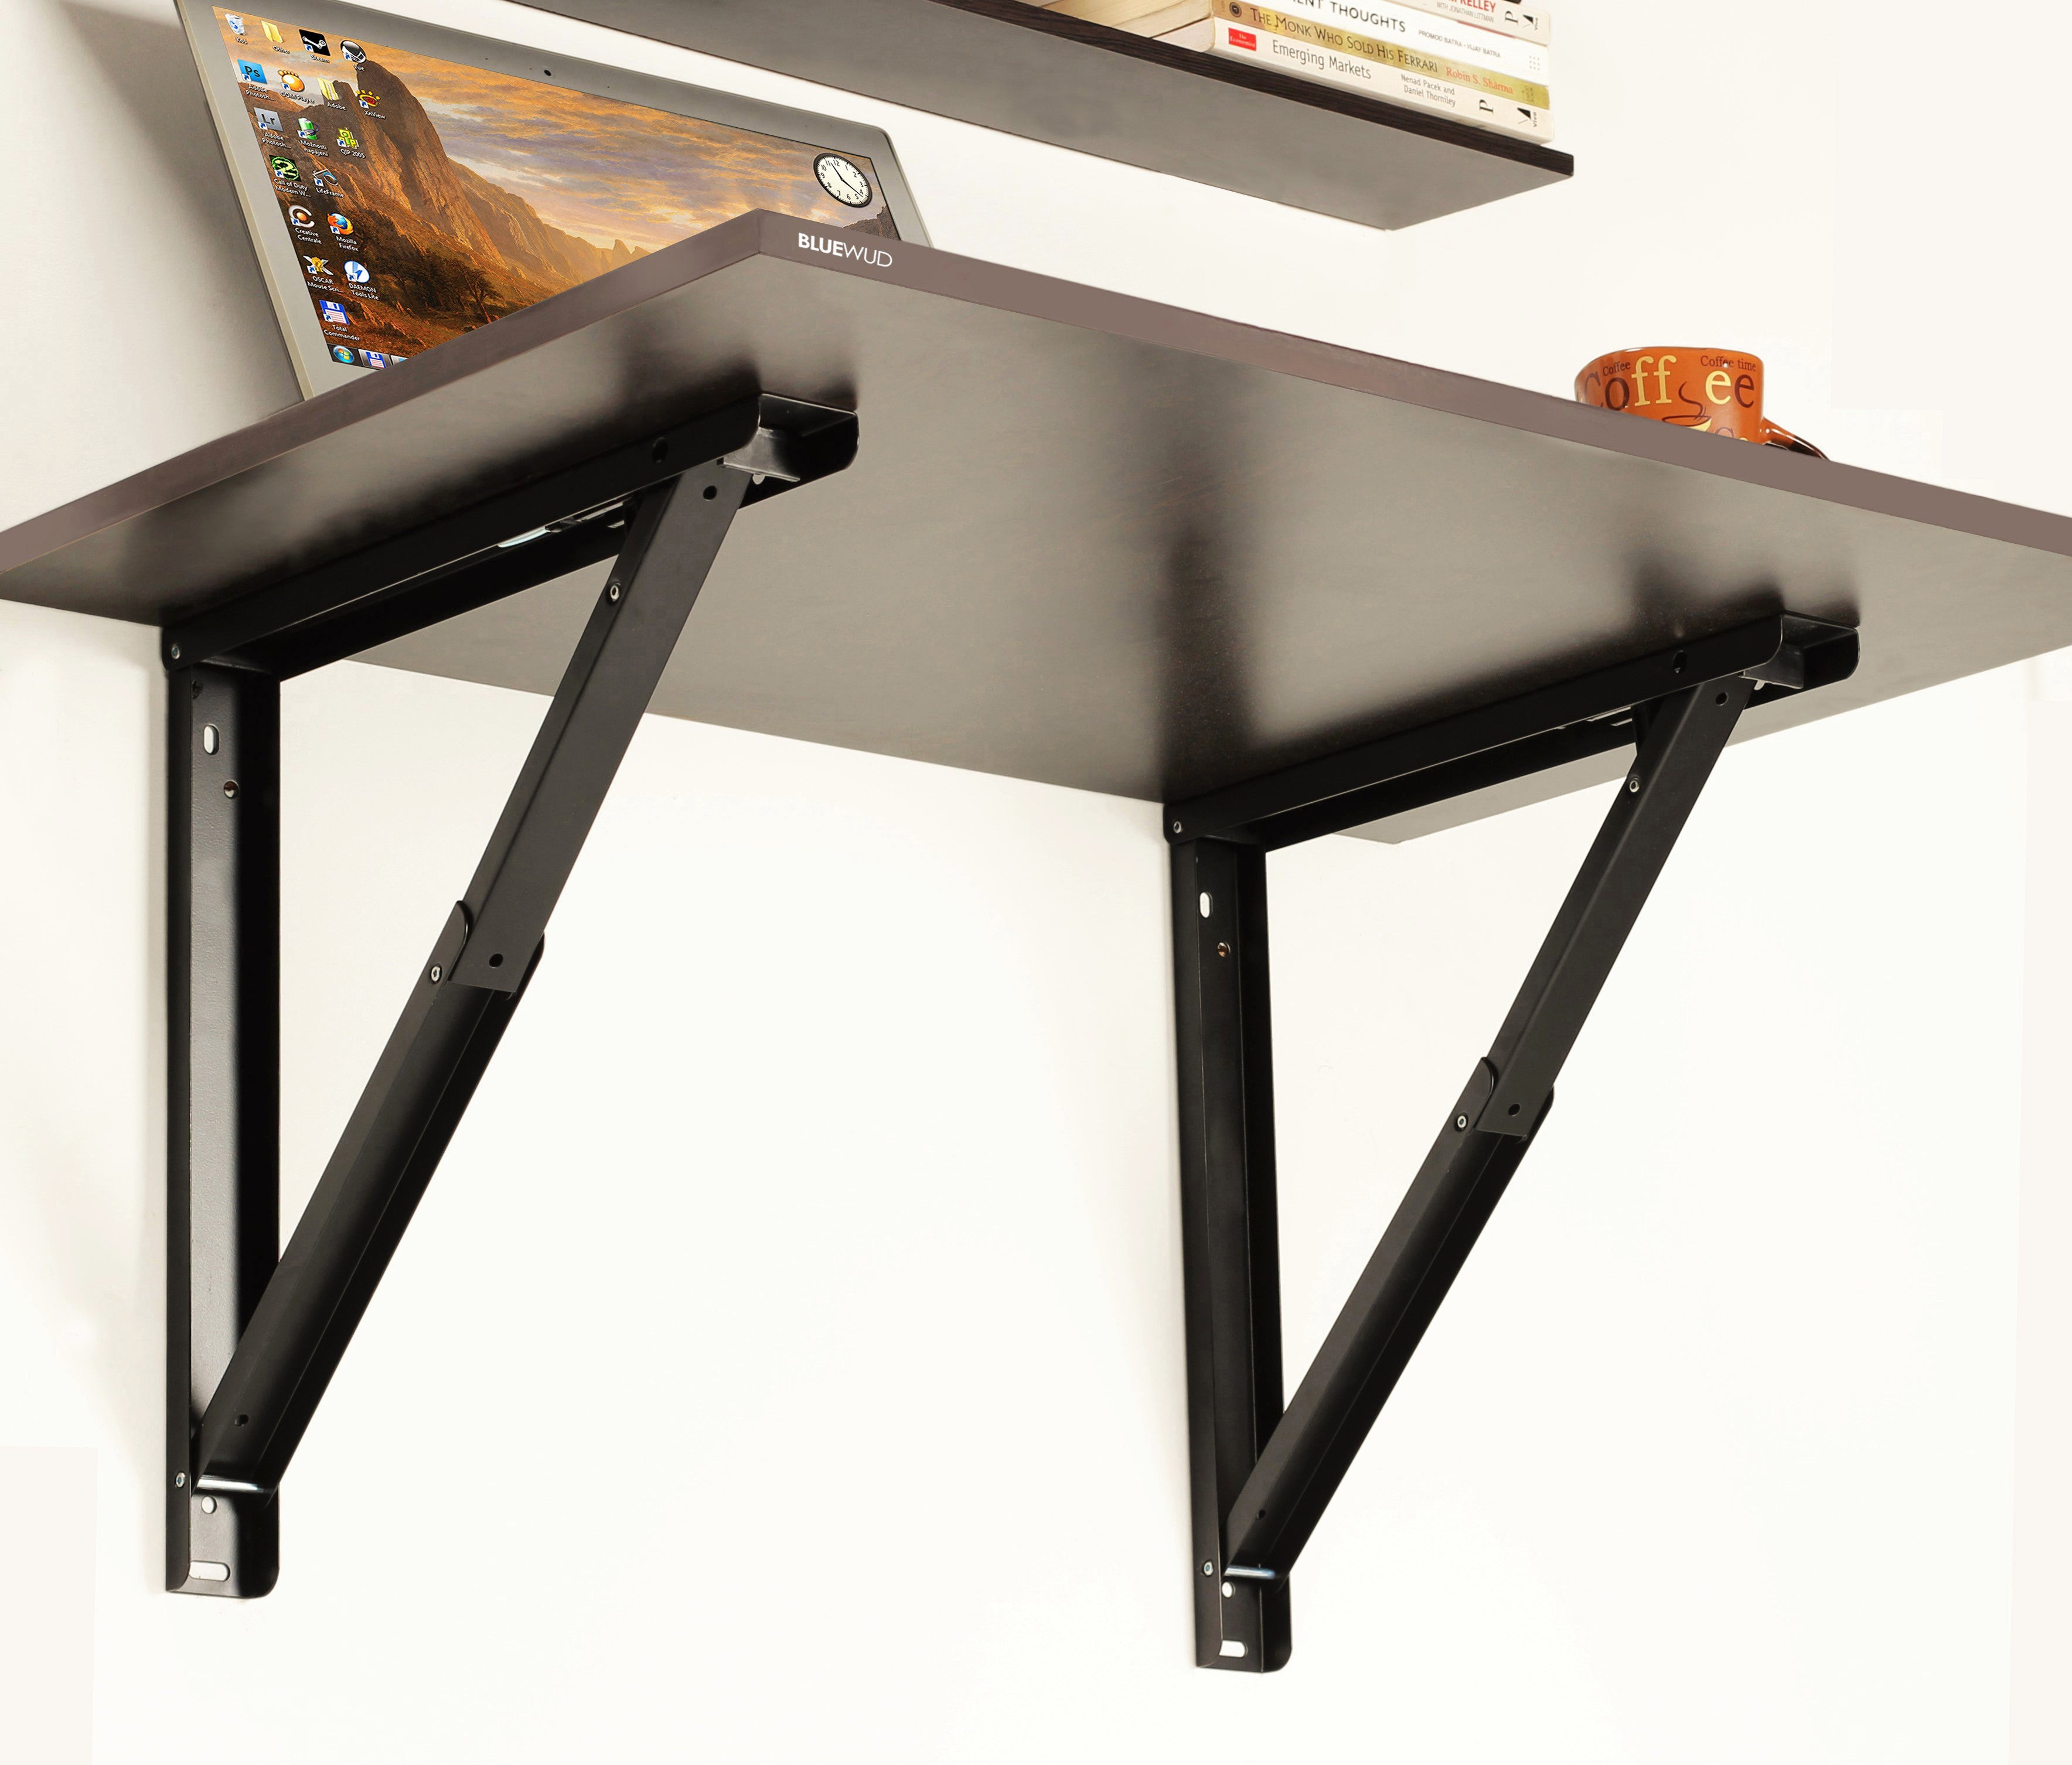 ... Hemming Folding Wall Mounted Study Table With Book Shelves    Bluewud.com ...